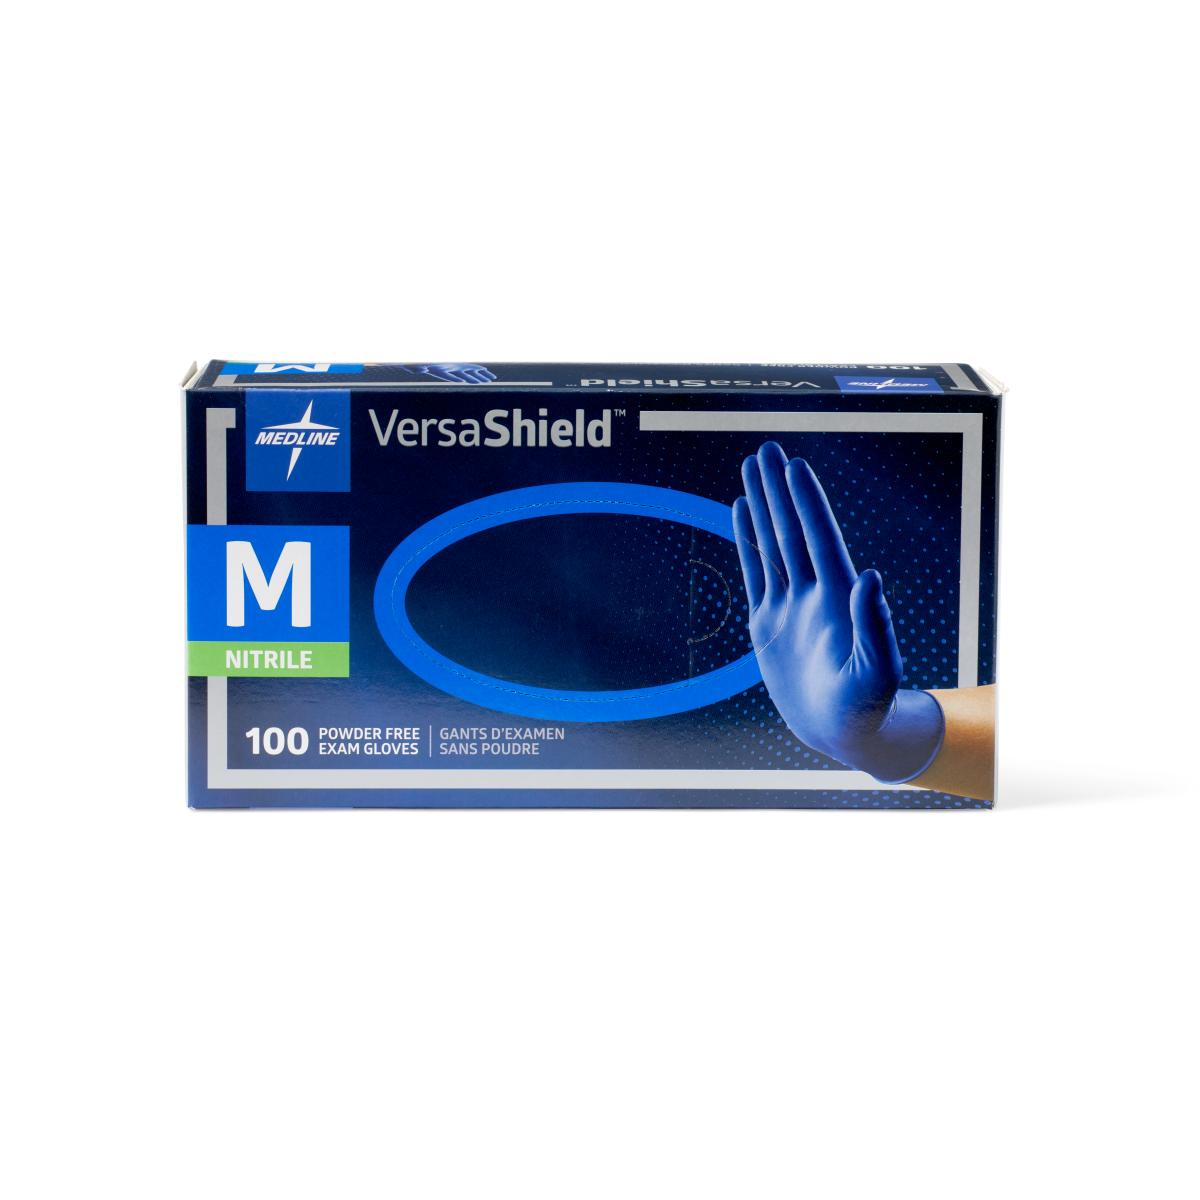 Versashield brand blue gloves in blue box - medium size